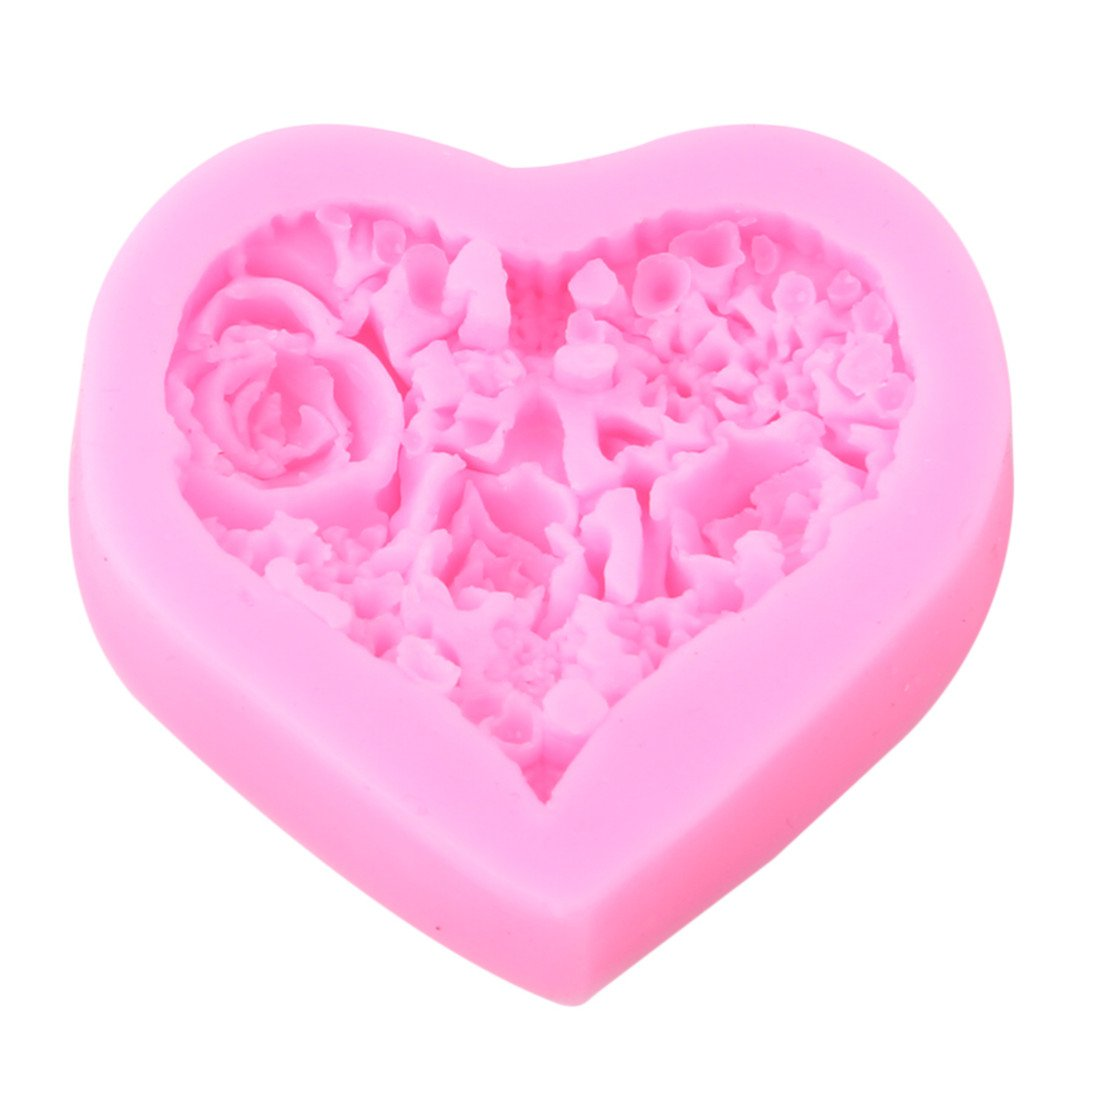 VWH Heart Rose Flower Silicone Chocolate Mould Fondant Candle Soap Mold